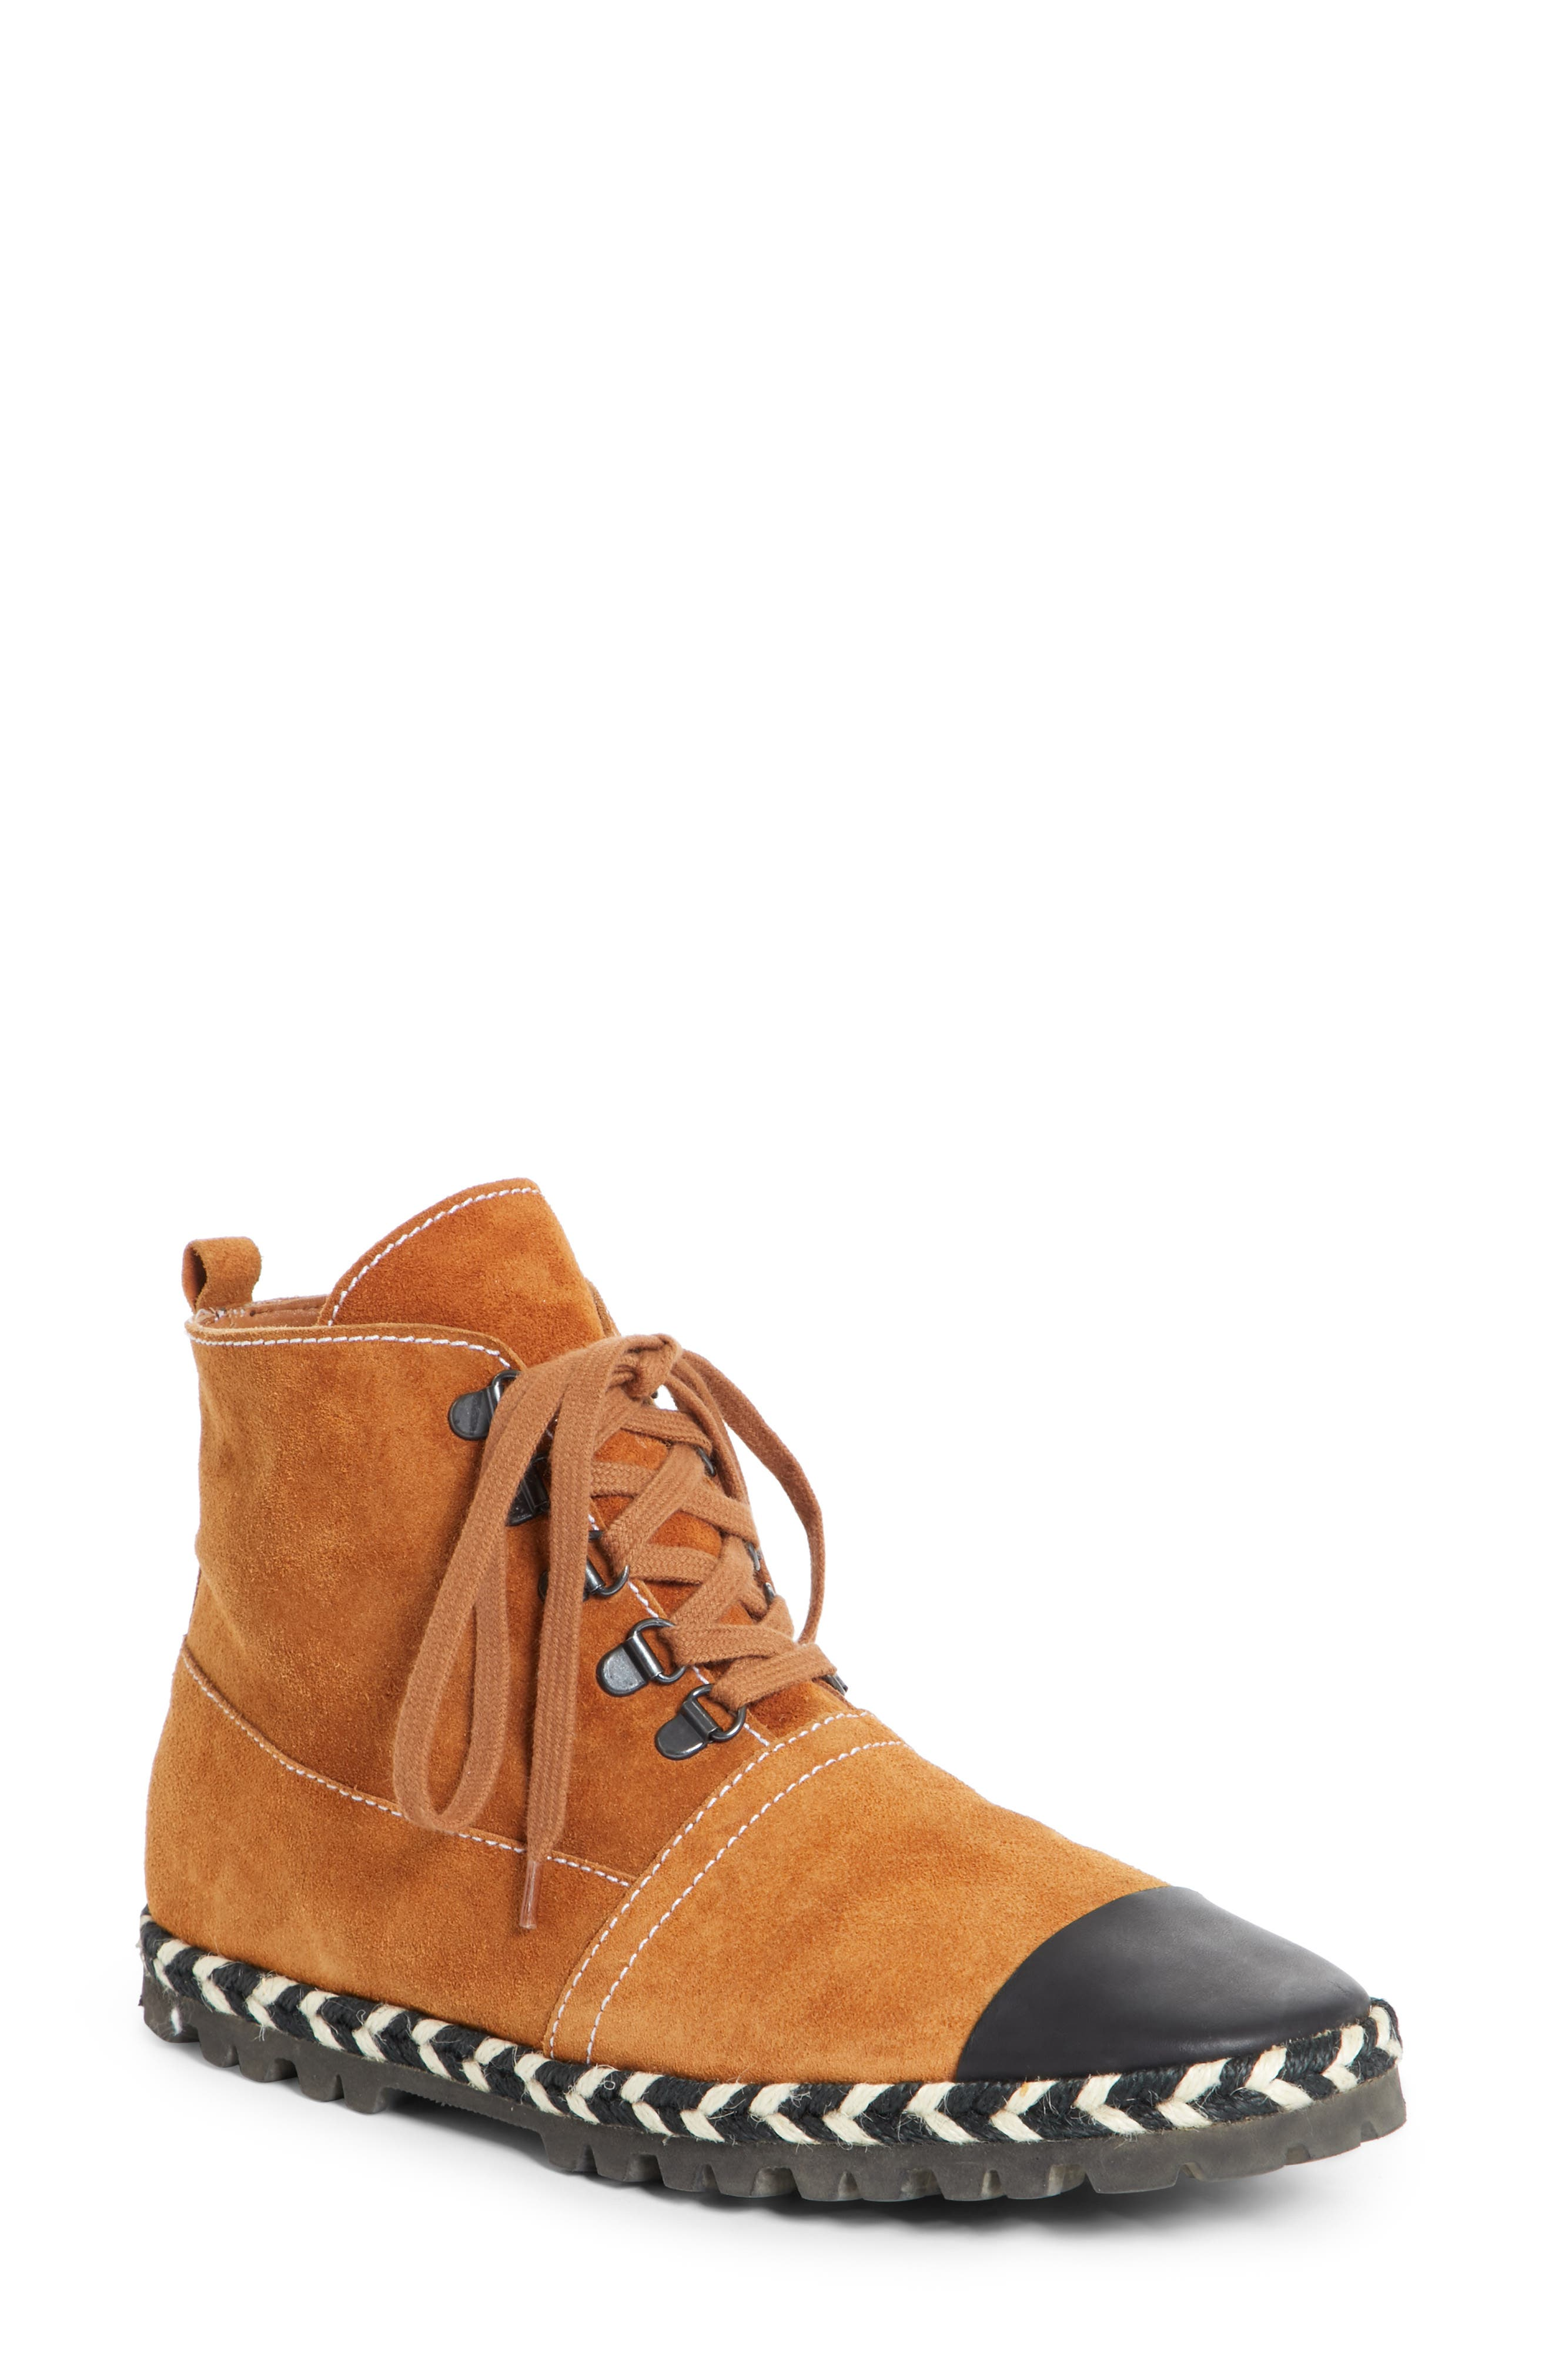 J.W.ANDERSON High Top Espadrille Boot (Women)